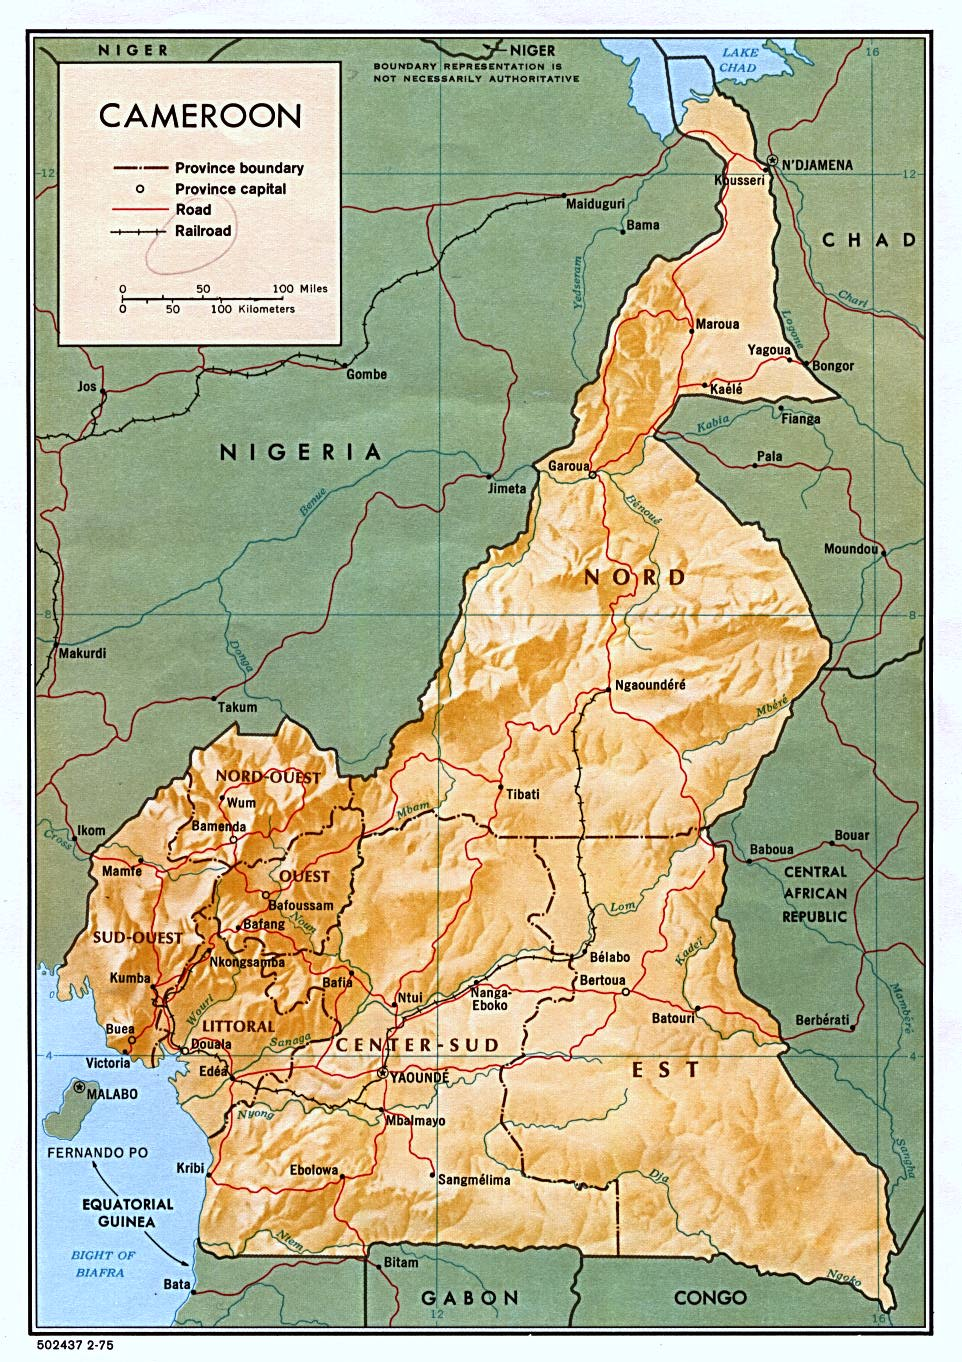 Cameroon Maps - Perry-Castañeda Map Collection - UT Library Online